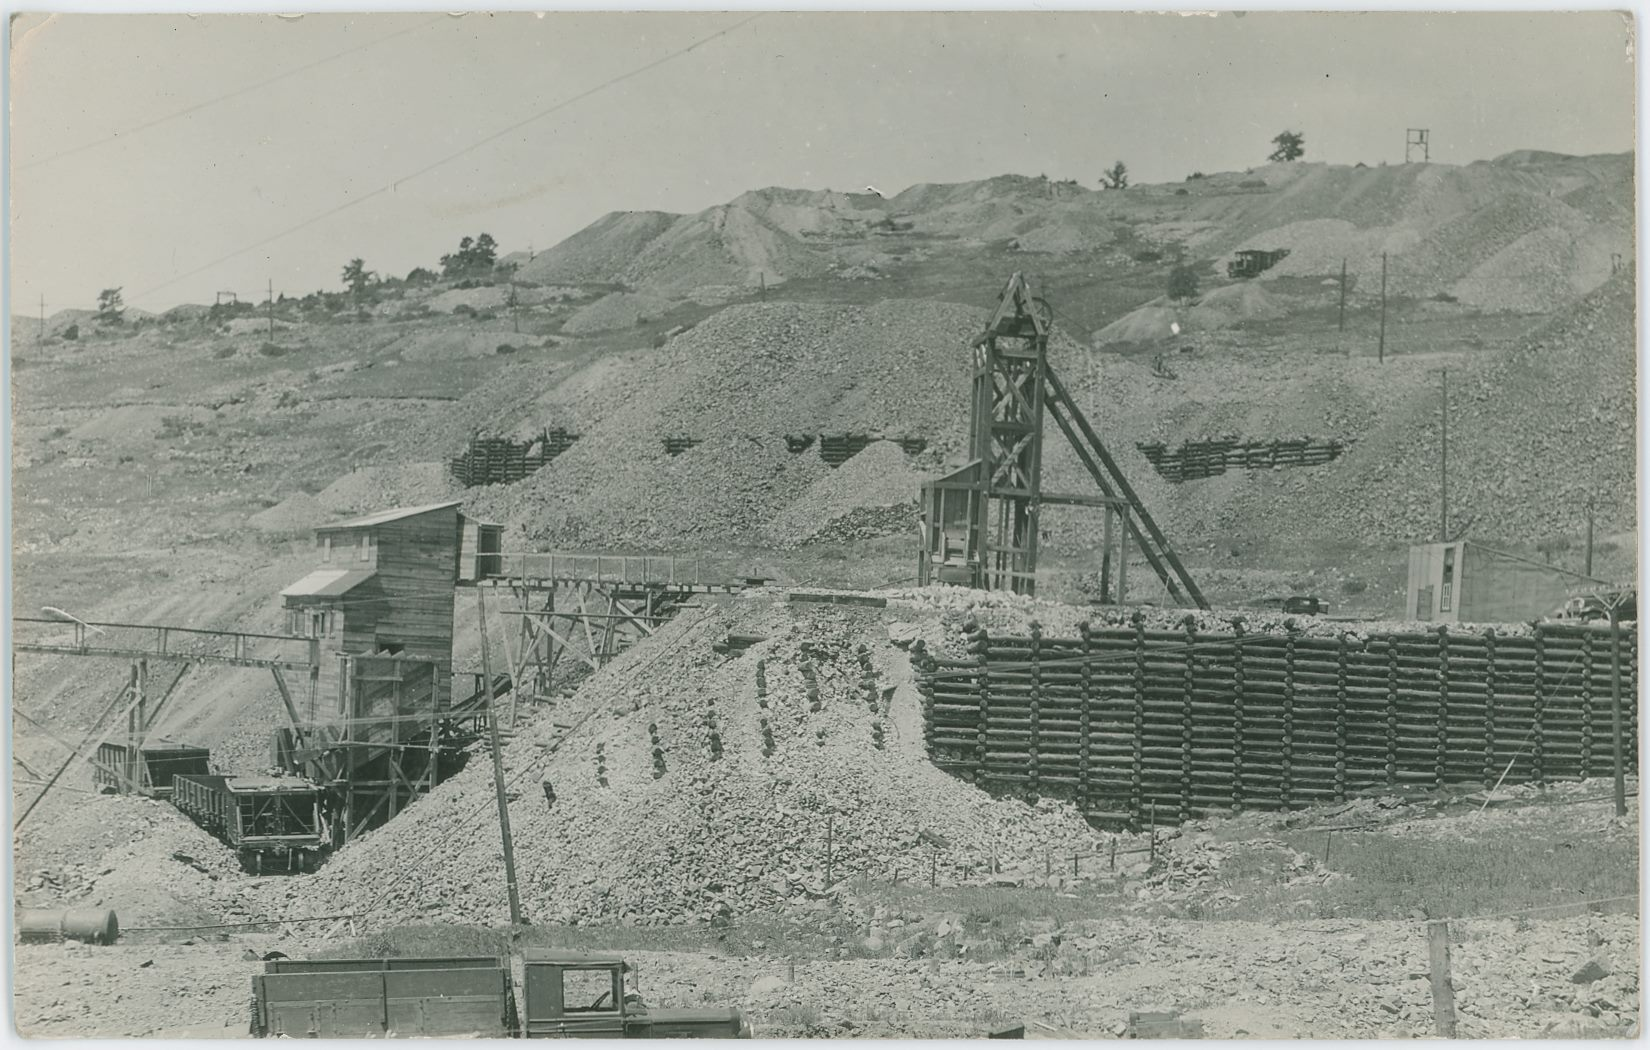 This is a view at a smaller Mine operation at the location of the former larger Hull City Mine, the cribbing seen further uphill in the background was part of the large Findley Dump. What happened to the much larger and well-known Hull City Mine I have no knowledge about, maybe it burned? Maybe it got tore down?    * About 2/7 down from top and nearly 1/7 in from left-hand side, against the sky, is the top of the Head-frame at the Specimen Mine seen with its wheel about center of the top frame from right to left in this view – very hard to make out on the postcard scan, easier to see on my 1200dpi scan.    * About 1/7 down from top and about 1/7 in from right-hand side is another Head-Frame seen, and I keep wondering if this might not be the eastern Lucky Guess shaft? Very hard to tell, the old shaft house is long gone.    * The old Golden Circle Mainline is seen about 2/5 down from top, entering the view at left-side, climbing a little, hide behind a dump at the crib-wall, then being visible a little again before exiting behind a new dump at the right-hand side. Below the crib-wall, almost at middle down/top is the old grade of the High Line, and the Short Line Portland branch – long gone in this view as I see no line side poles, so this help dating the view to be after the demise of the Trolley Service in late 1919.    * Sanborn Fire Insurance Map for Victor dated August 1919 (Sheet 10; Independence) shows the more common old larger structure at this location, so I do think this view is way later but have nothing to compare it with.